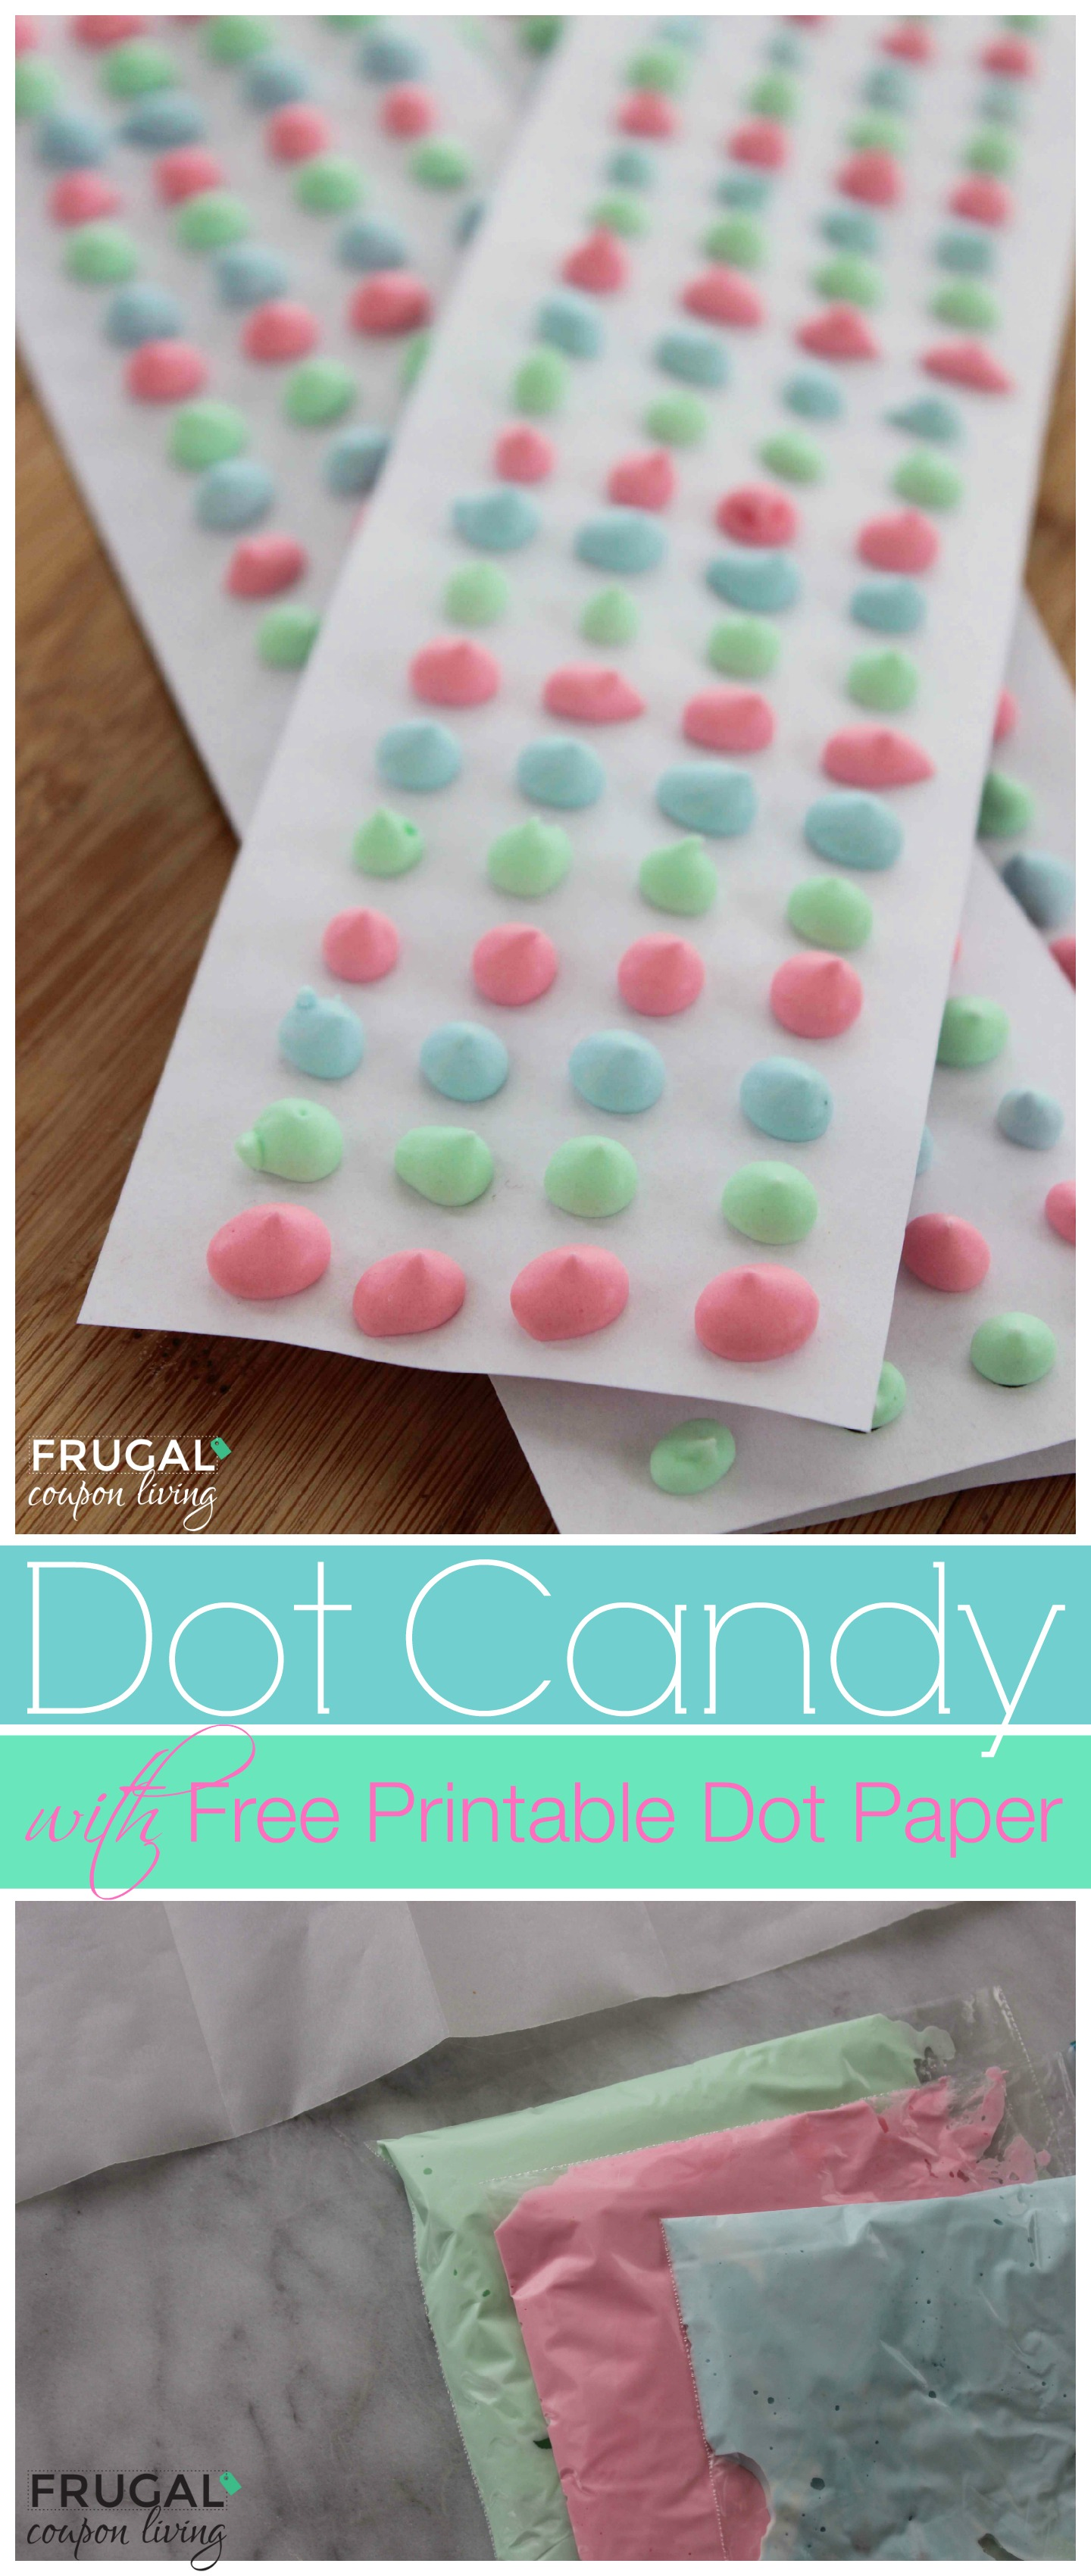 Dot-candy-Collage-frugal-coupon-living